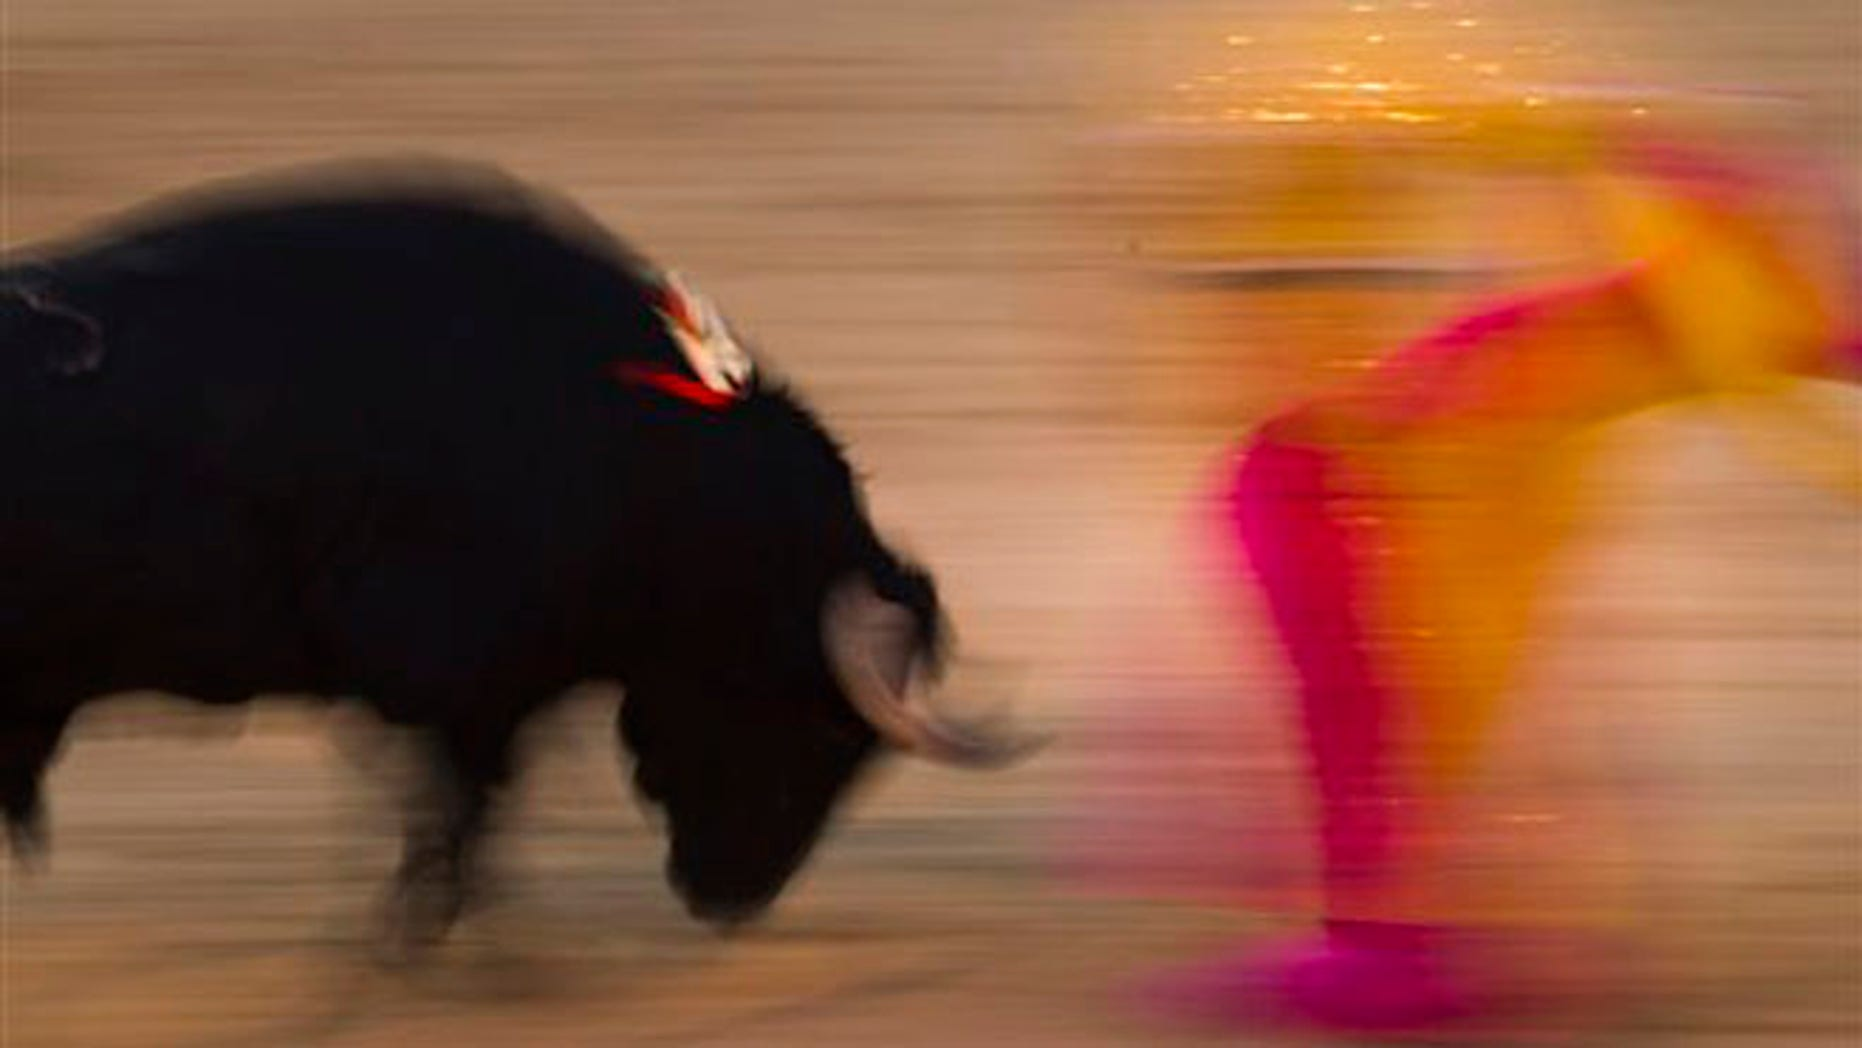 File - In this Aug. 15, 2010 file photo, Spanish bullfighter Victor Puerto performs during a bullfight at the Las Ventas Bullring in Madrid. Spain's state TV will start airing live bullfights again on Sept. 5, 2012 after the new conservative government lifted a six-year ban on the tradition that has been hard hit by declining popularity and the economic crisis. It's a big victory for pro-bullfighting forces who saw fights prohibited this year in the northeastern region of Catalonia. And it's a defeat for animal rights activists who denounce bullfighting as barbaric. The live transmissions were halted in 2006 by Spain's previous Socialist administration, which said they were costly and coincided with youth TV viewing hours. (AP Photo/Daniel Ochoa de Olza, File)